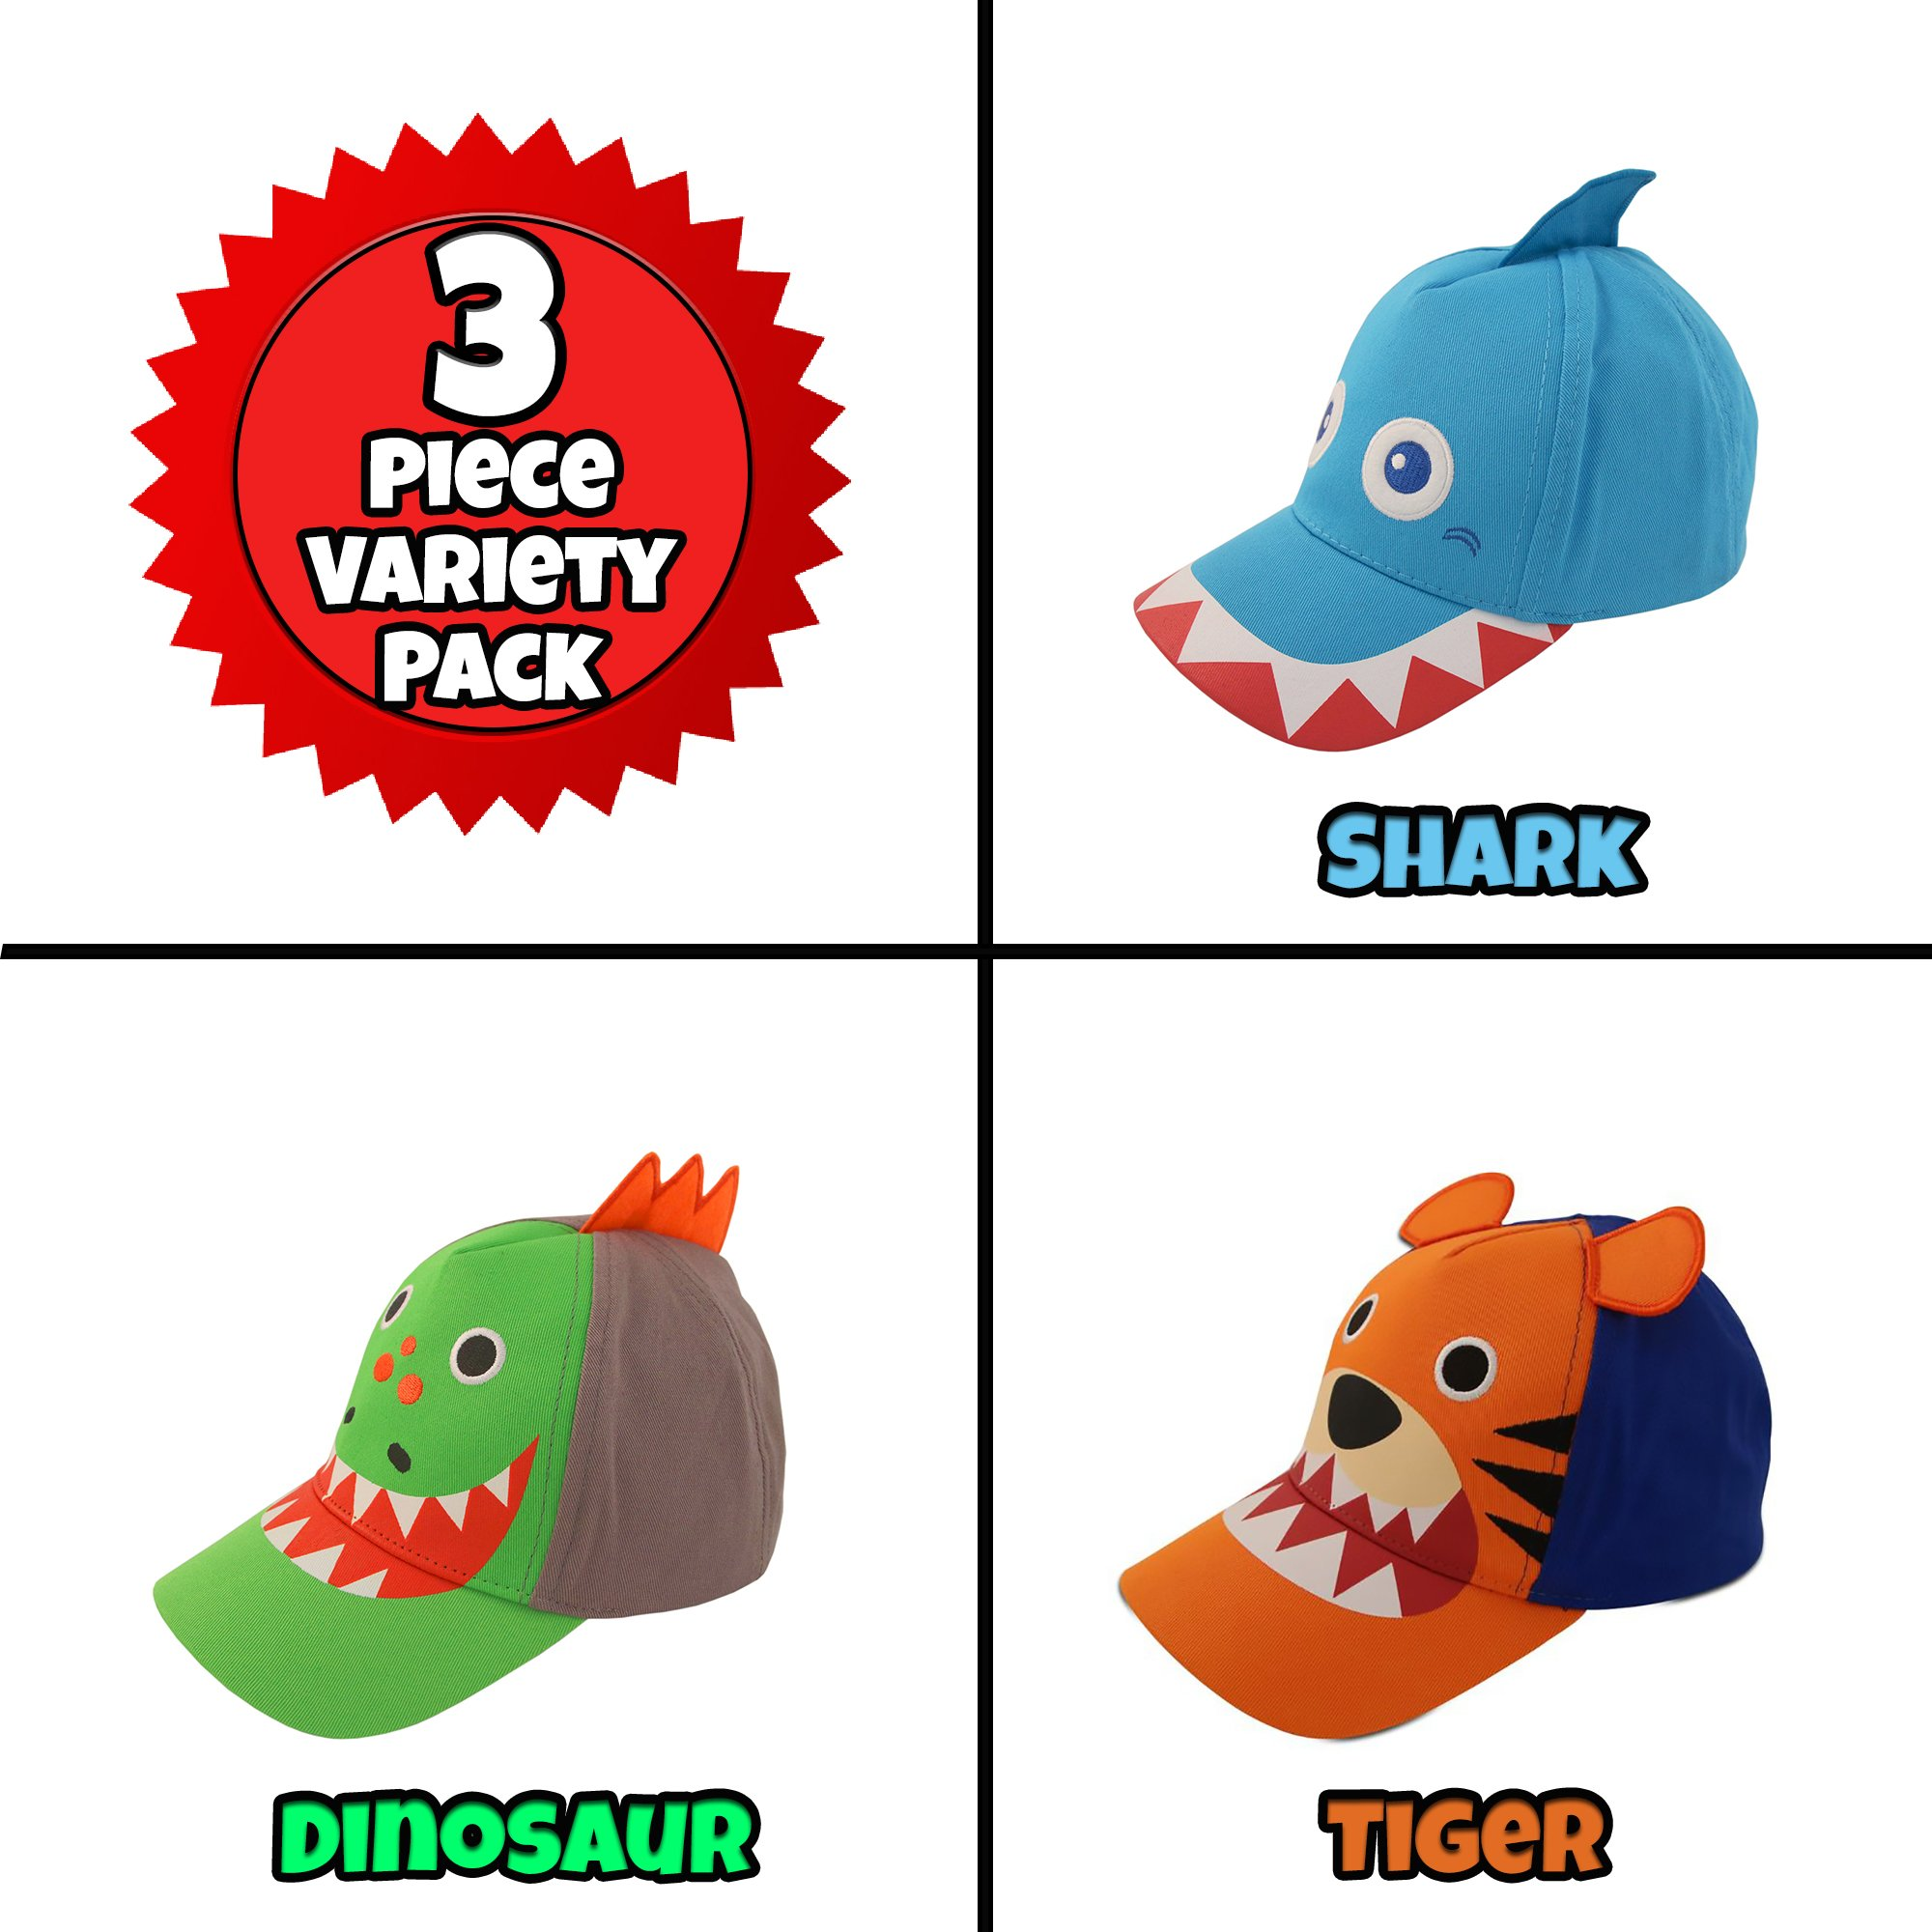 ABG Accessories Toddler Boys Cotton Baseball Cap with Assorted Animal Critter Designs, Age 2-4 (3 Piece Variety Design Pack)